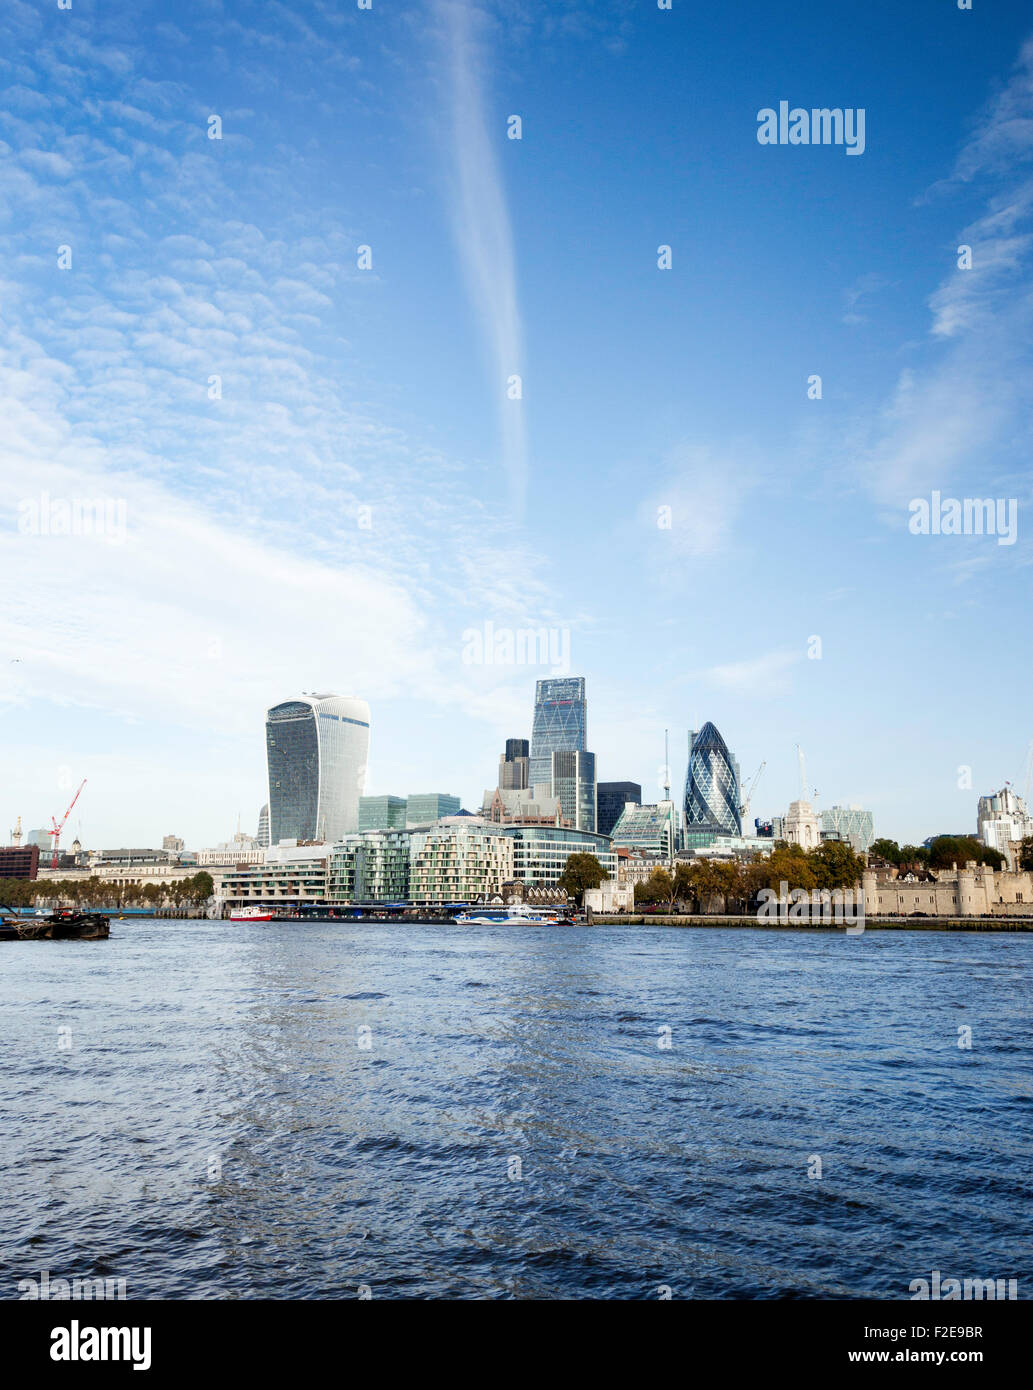 A London skyline image of the North Bank  buildings across the River Thames in the United Kingdom. - Stock Image